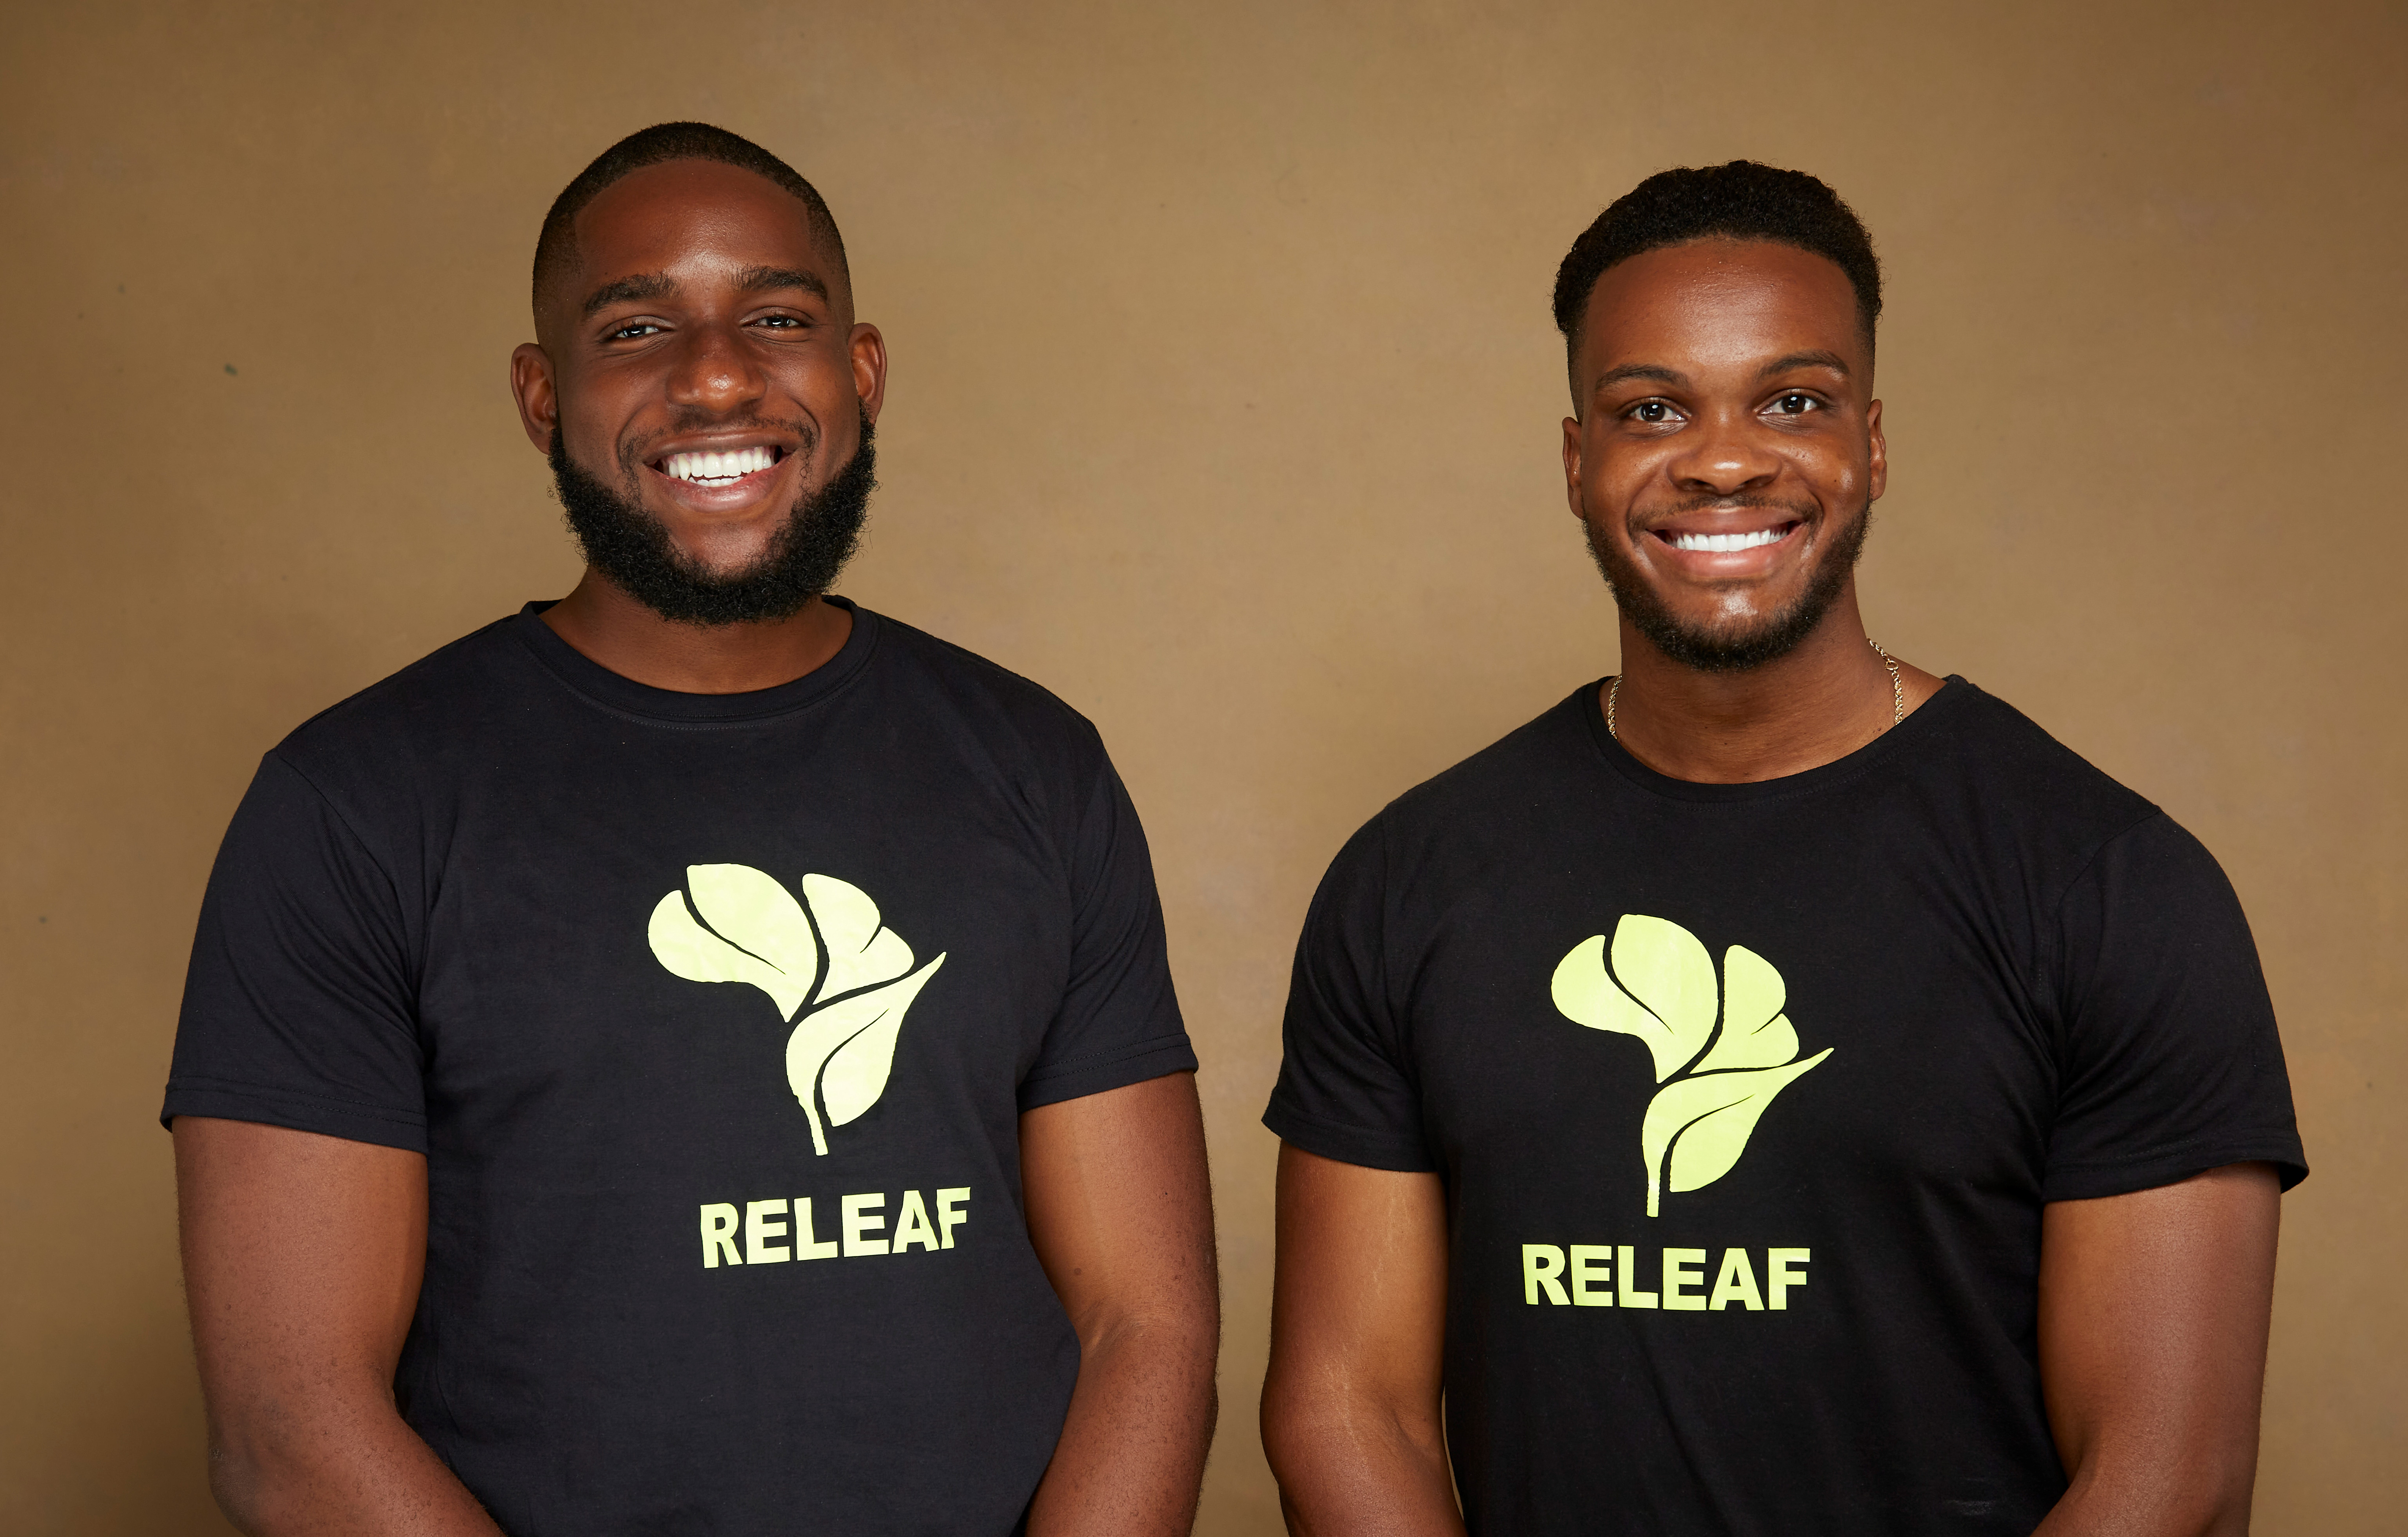 A picture of the two founders of Releaf, both dressed in black polos with the green logo of their company inscribed.